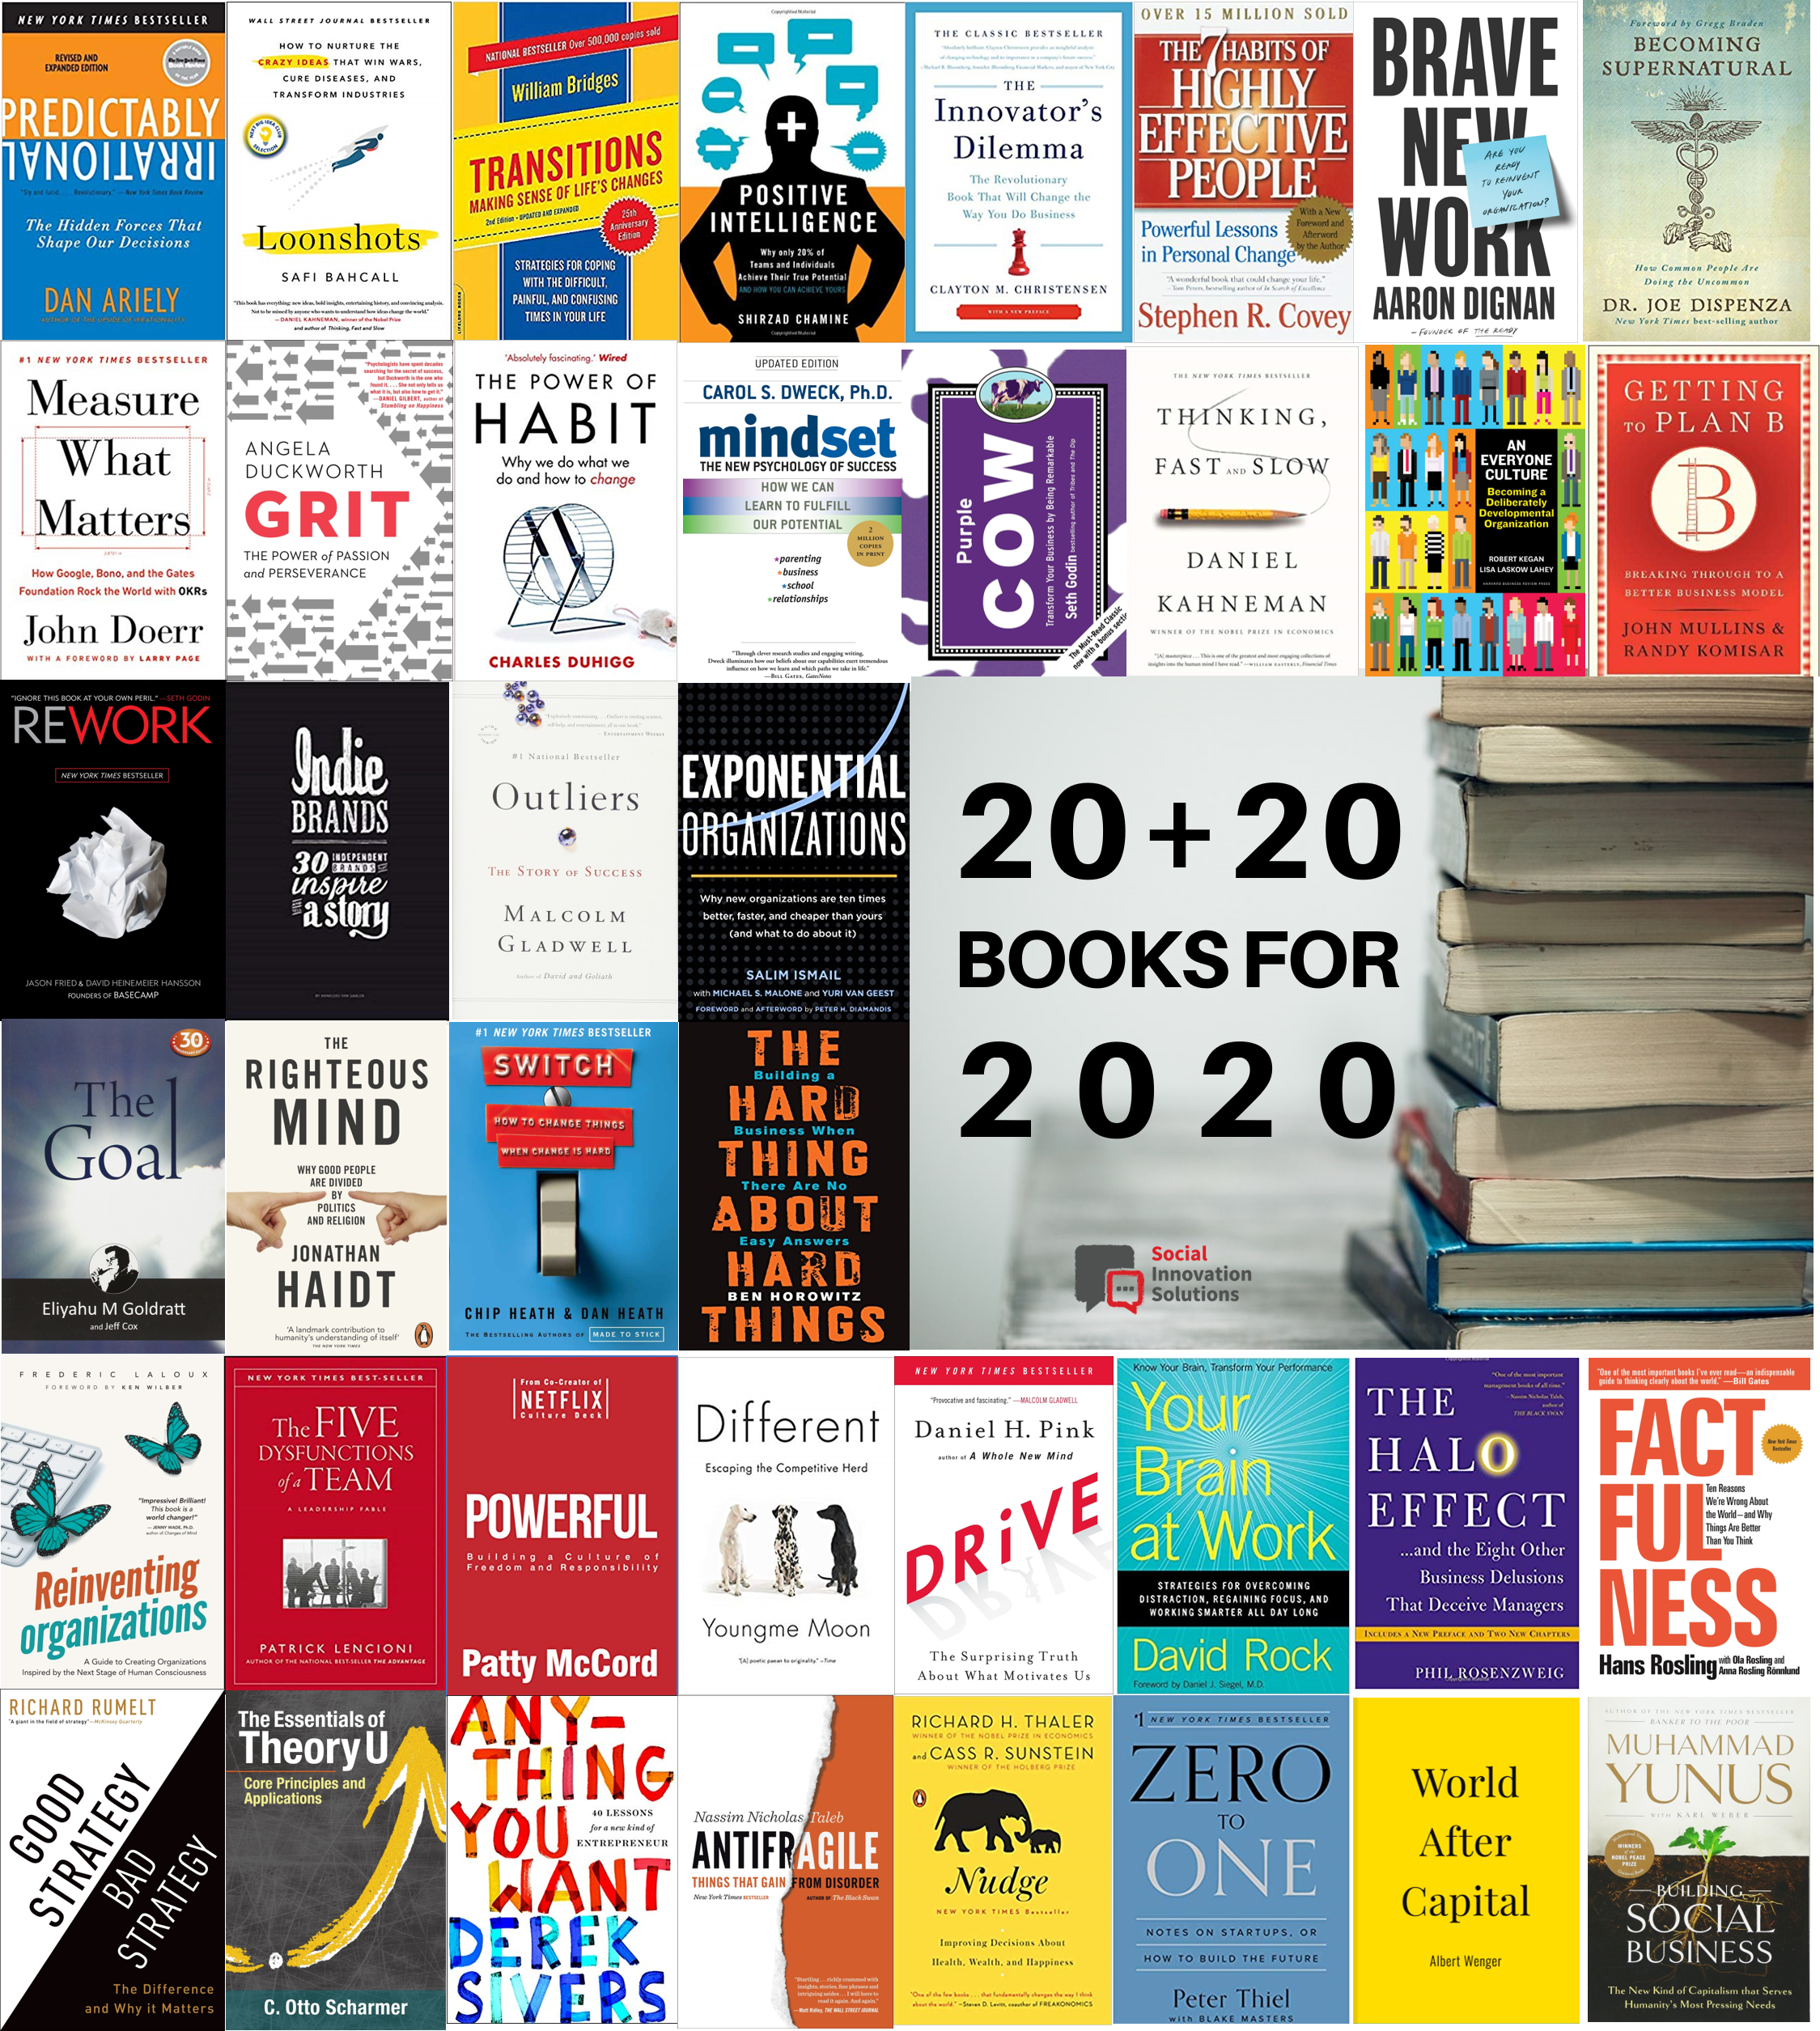 New York Times Best Sellers 2020.20 20 Books For 2020 Ciprian Stanescu Medium